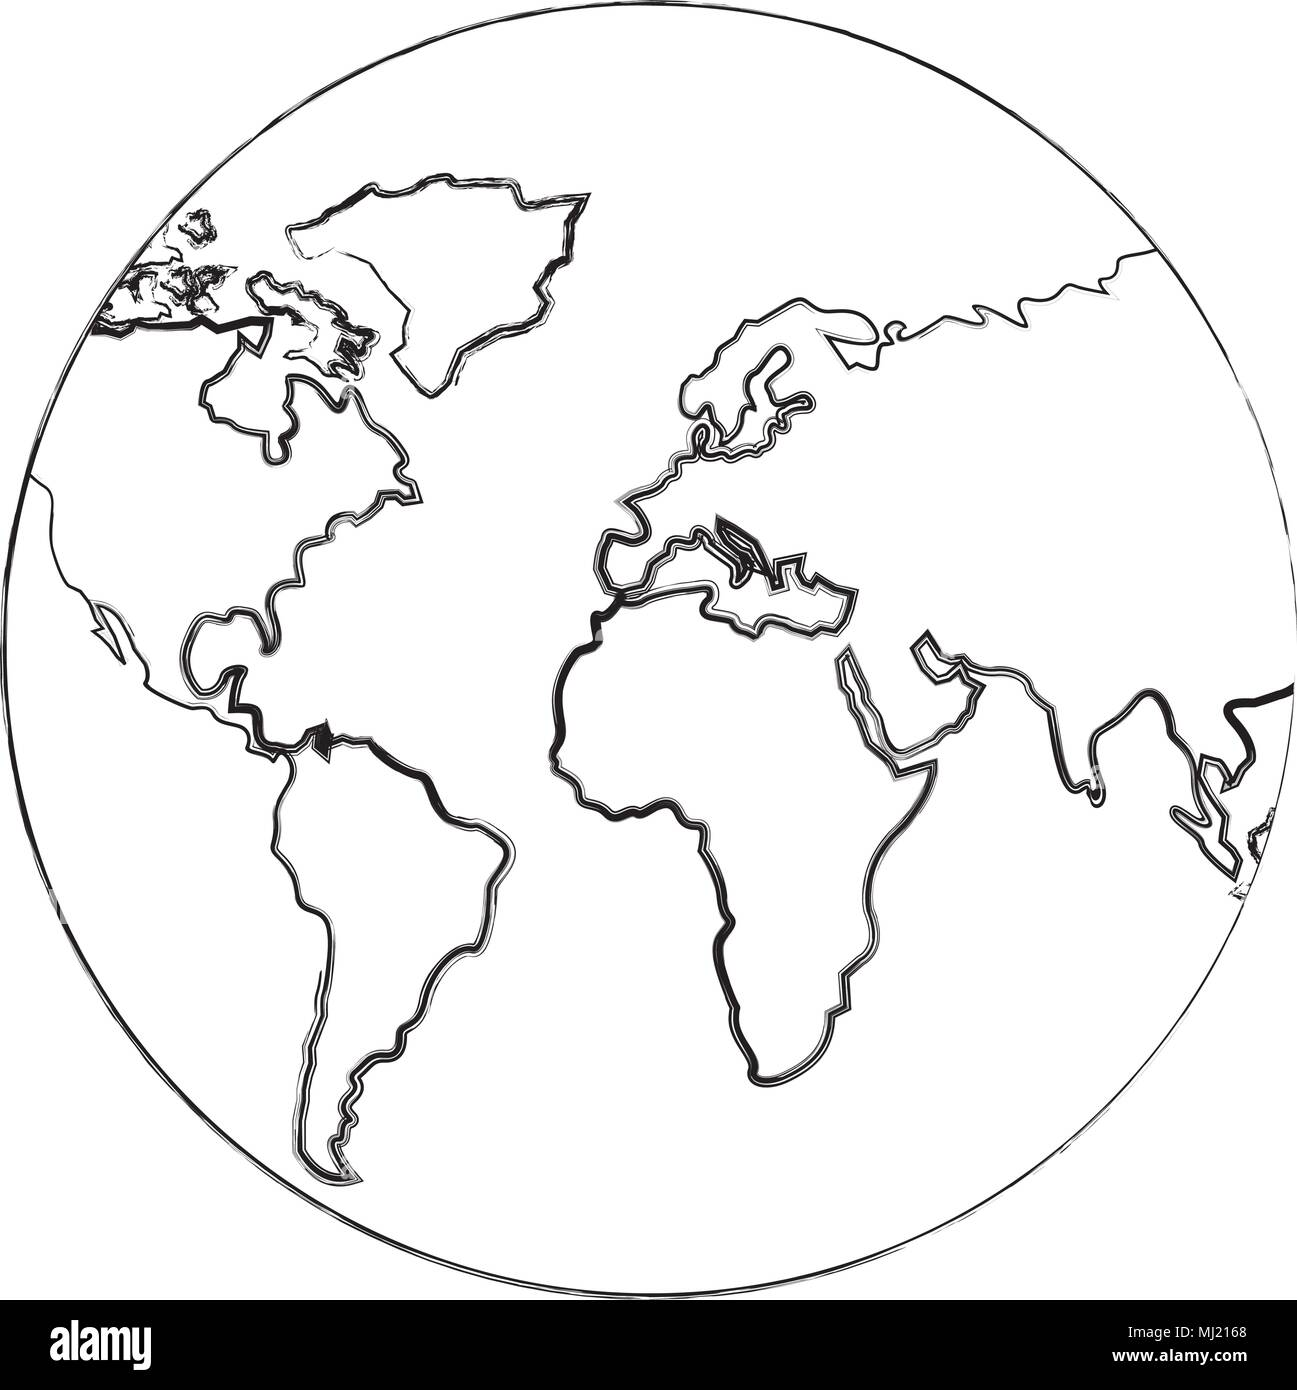 globe map world location geography vector illustration ... on atlas globe map, kenya globe map, iran globe map, rome globe map, pacific ocean globe map, switzerland globe map, ethiopia globe map, greenland globe map, brazil globe map, germany globe map, greece globe map, polynesia globe map, baseball globe map, morocco globe map, oceania globe map, 3rd grade globe map, scandinavia globe map, egypt globe map, ecuador globe map, nigeria globe map,